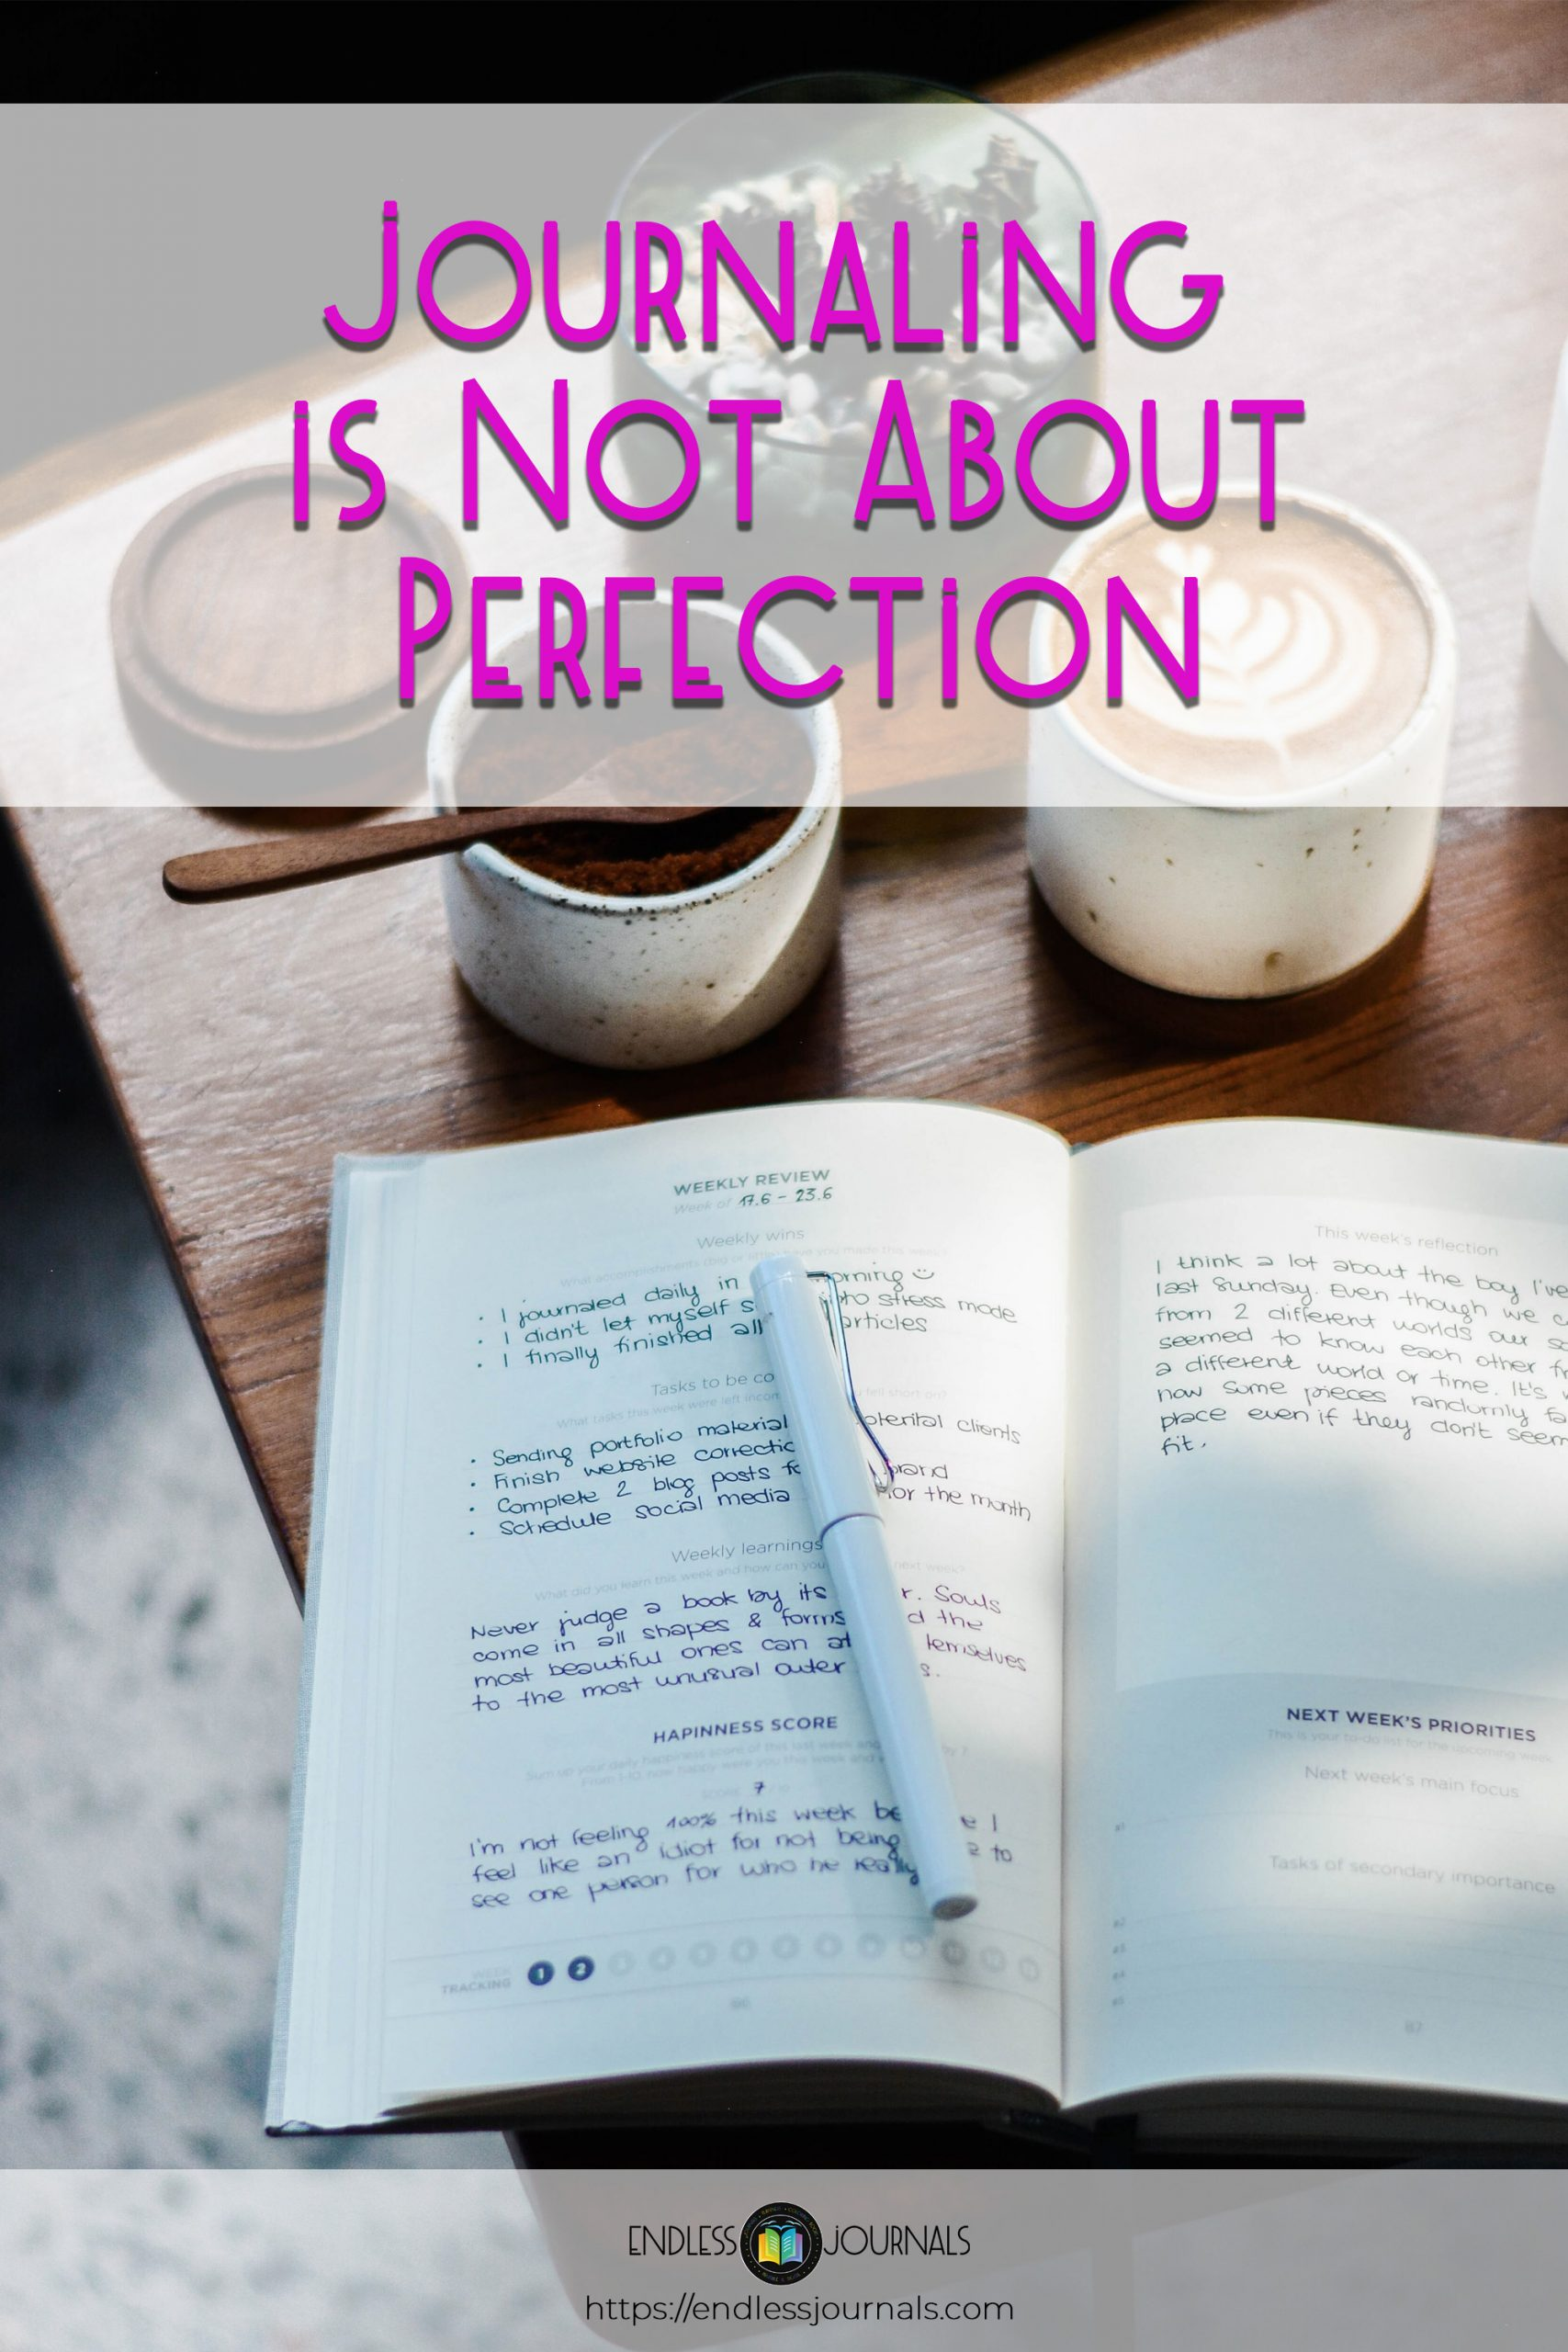 Journaling is not about perfection - pinterest 01